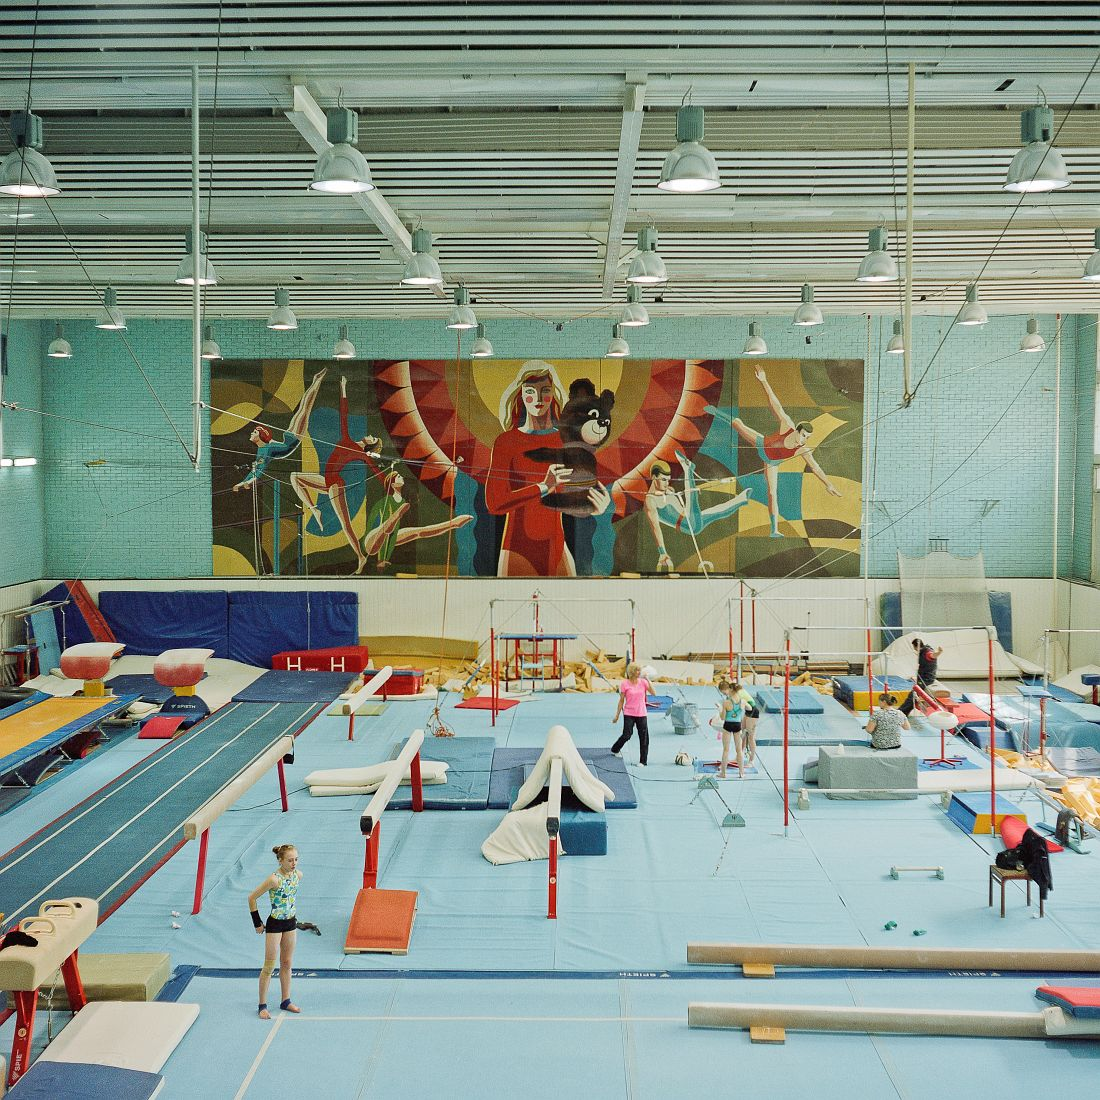 Interior of a Gymnastics hall at Moscow Olympiysky Sports Complex. The sports complex completed in 1980 remains the largest stadium in Europe. During Moscow Olympics it hosted competitions in 22 different disciplines. Currently apart from being used for sports and musical venues, it hosts offices, bars, clothes market.